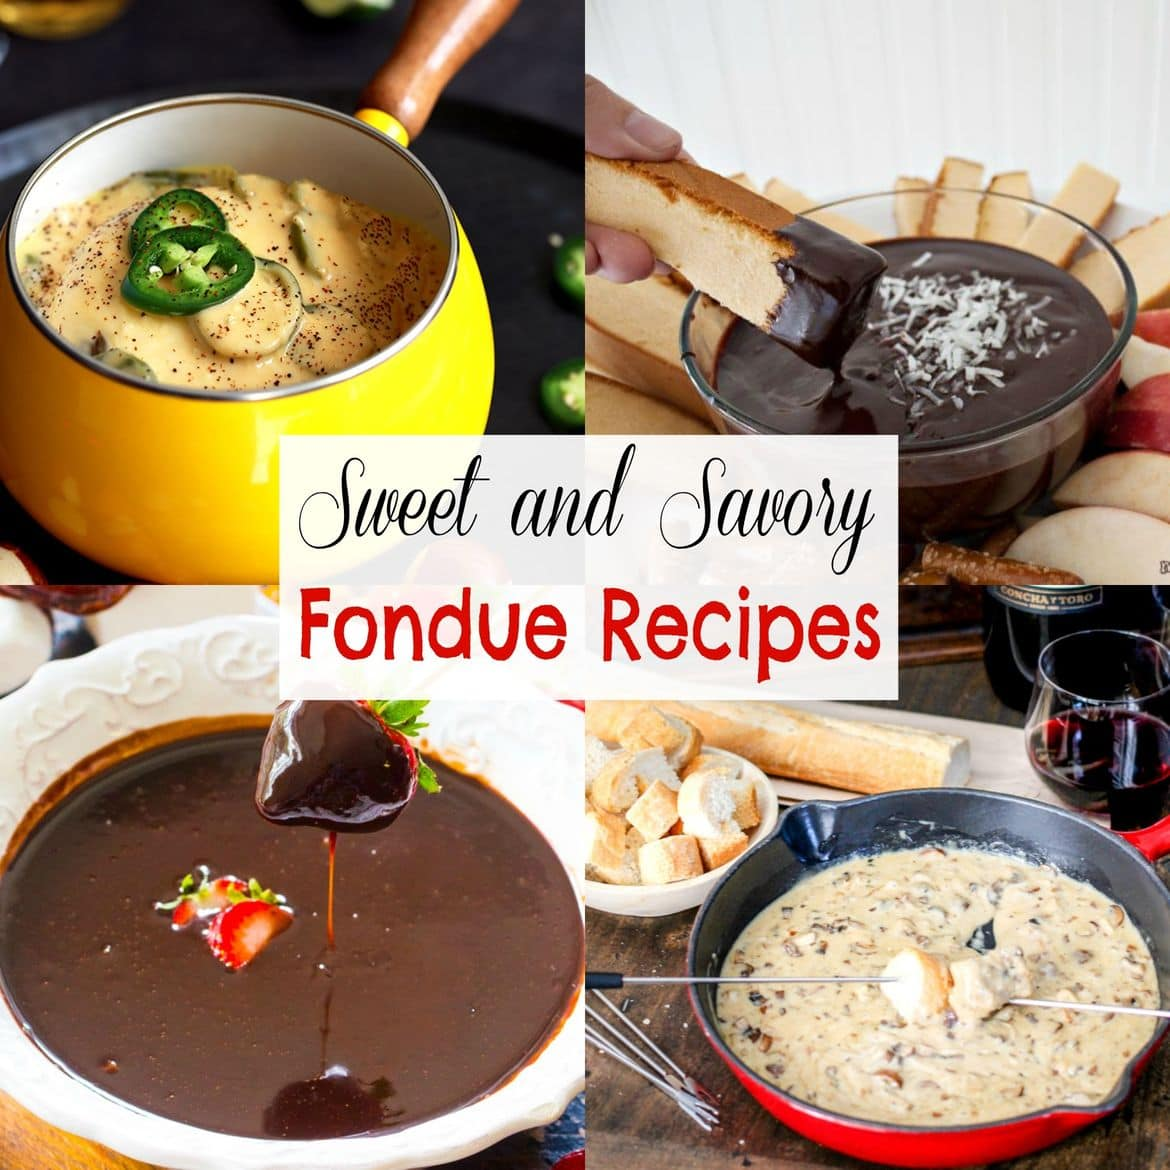 Sweet and Savory Fondue Recipes